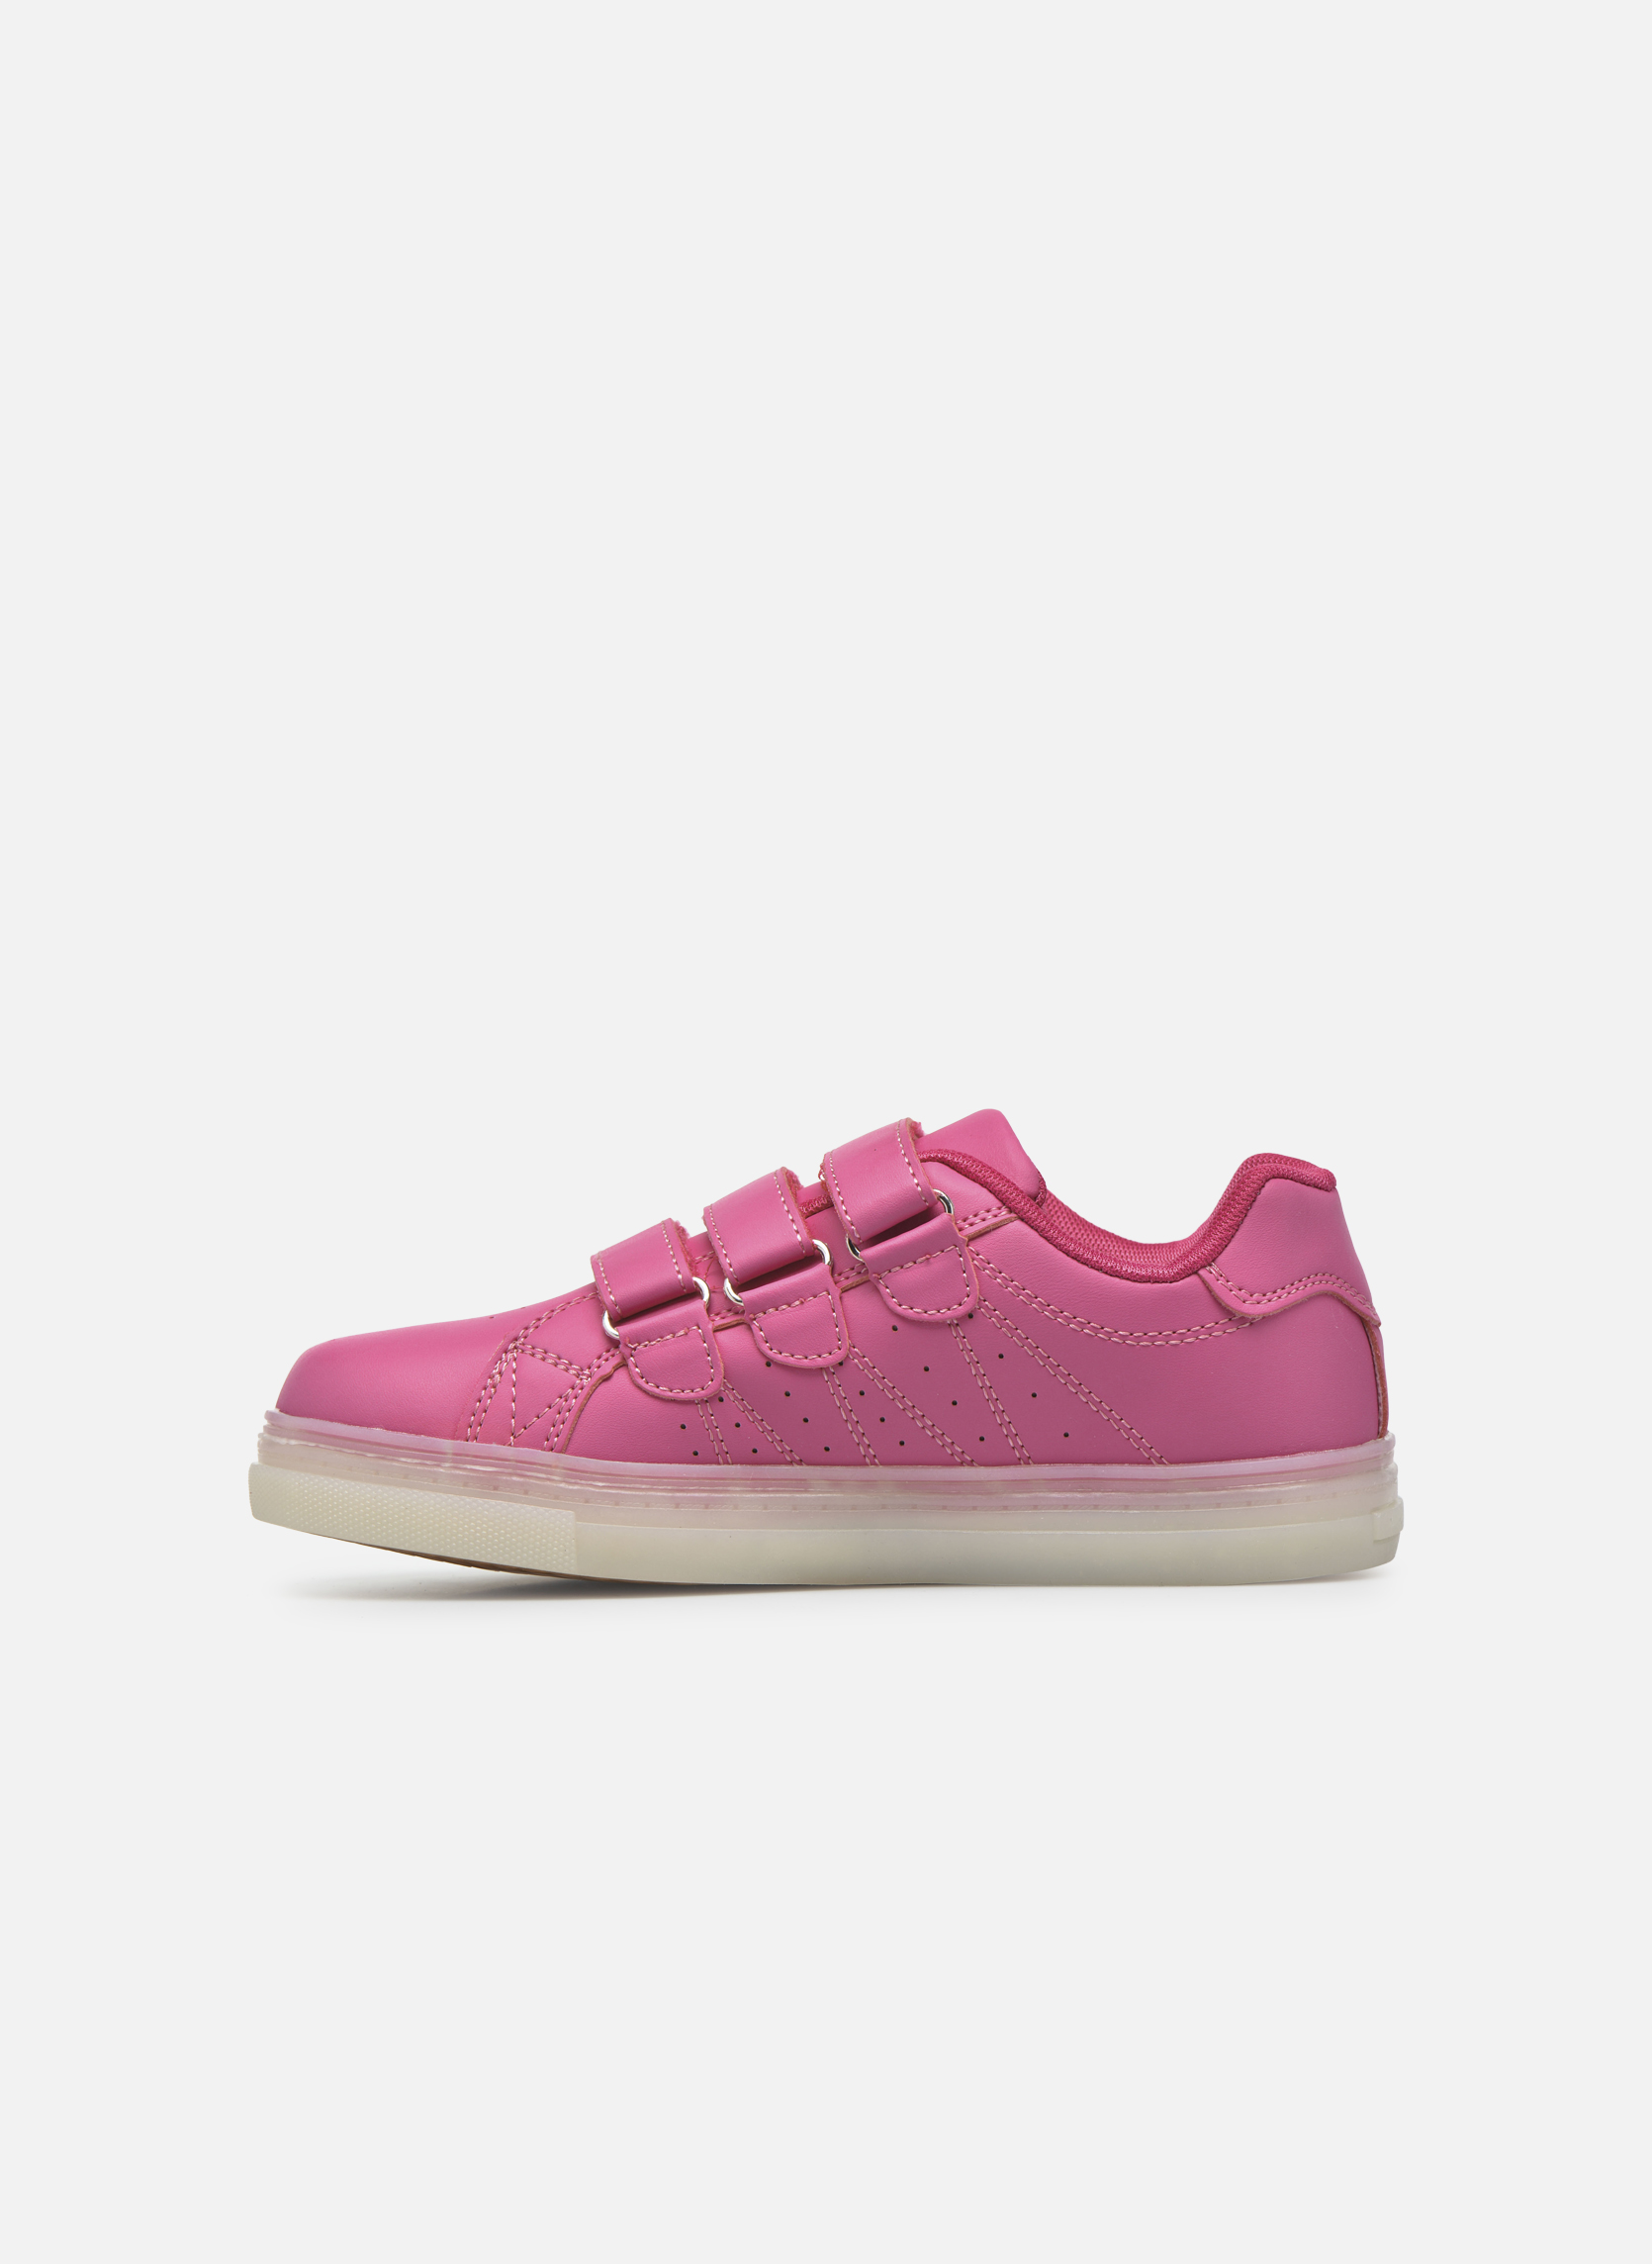 Beps Light Fushia